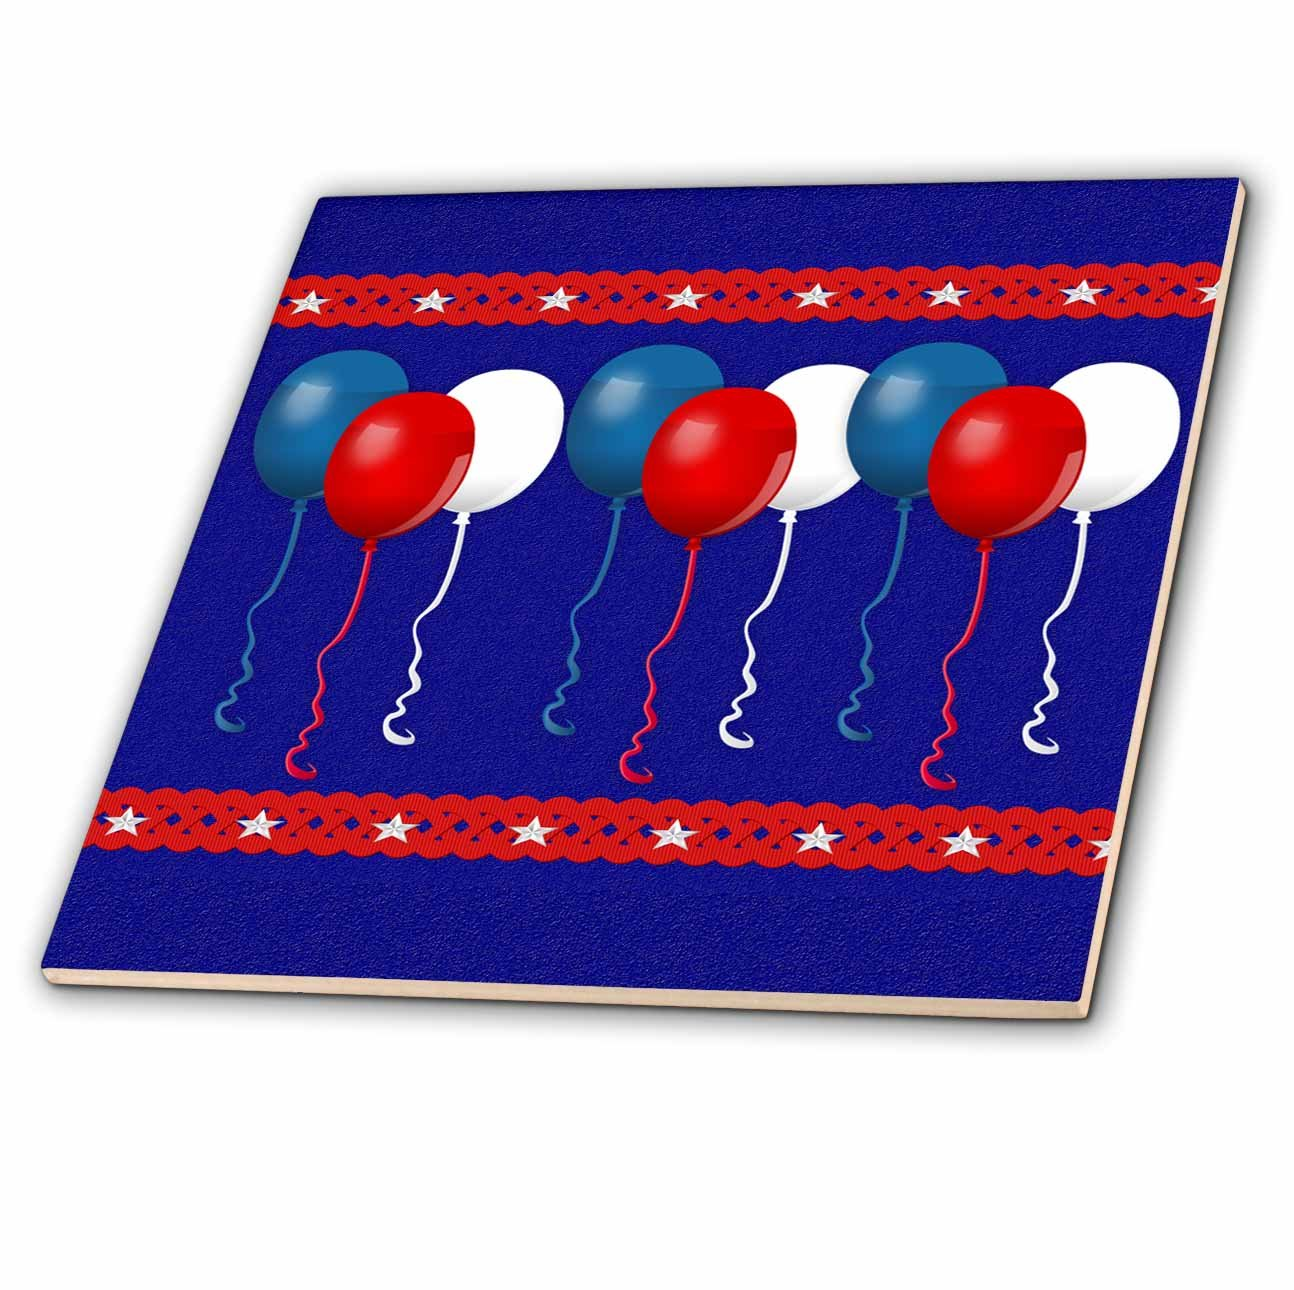 Fourth of july ceramic and glass tiles fourth of july wikii beverly turner patriotic design patriotic balloons in red white and blue red trim with stars 6 inch ceramic tile beverly turner patriotic design dailygadgetfo Images